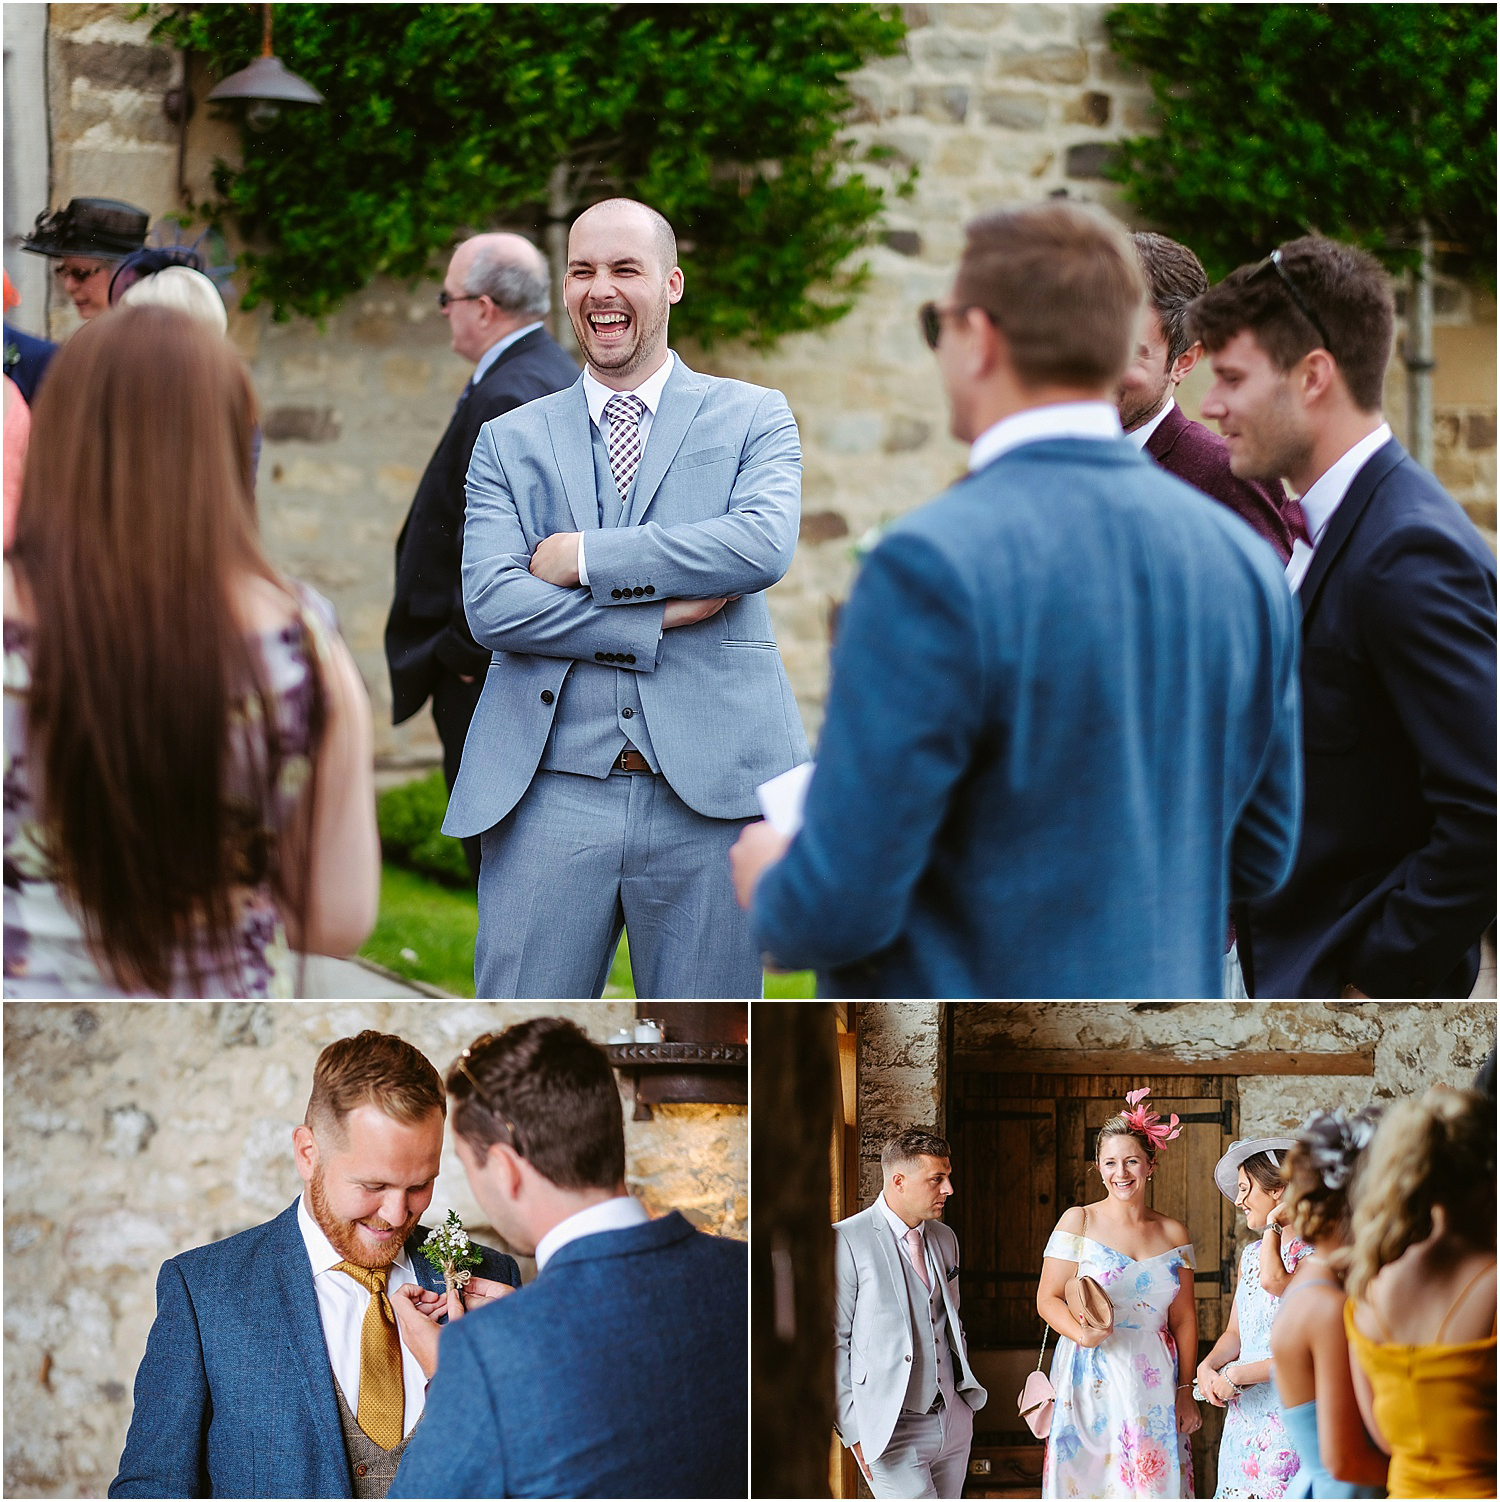 Wedding at Healey Barn - wedding photography by www.2tonephotography.co.uk 028.jpg